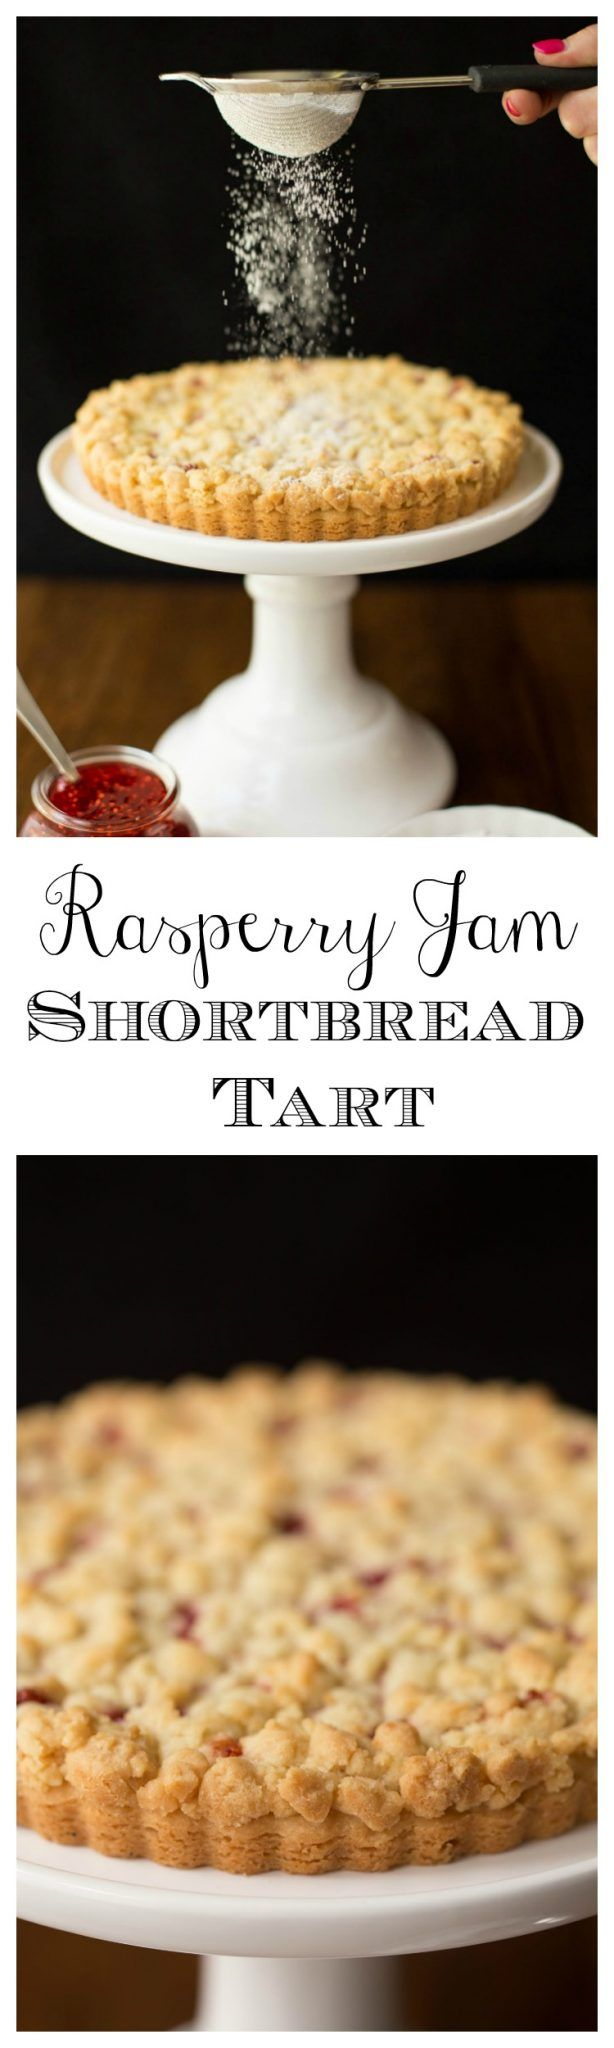 Raspberry Jam Shortbread Tart - with a layer of sweet raspberry jam nestled between the crisp, melt in your mouth shortbread crust and buttery crumble topping, this simple tart might be one of the most delicious desserts you'll ever have the pleasure of meeting!